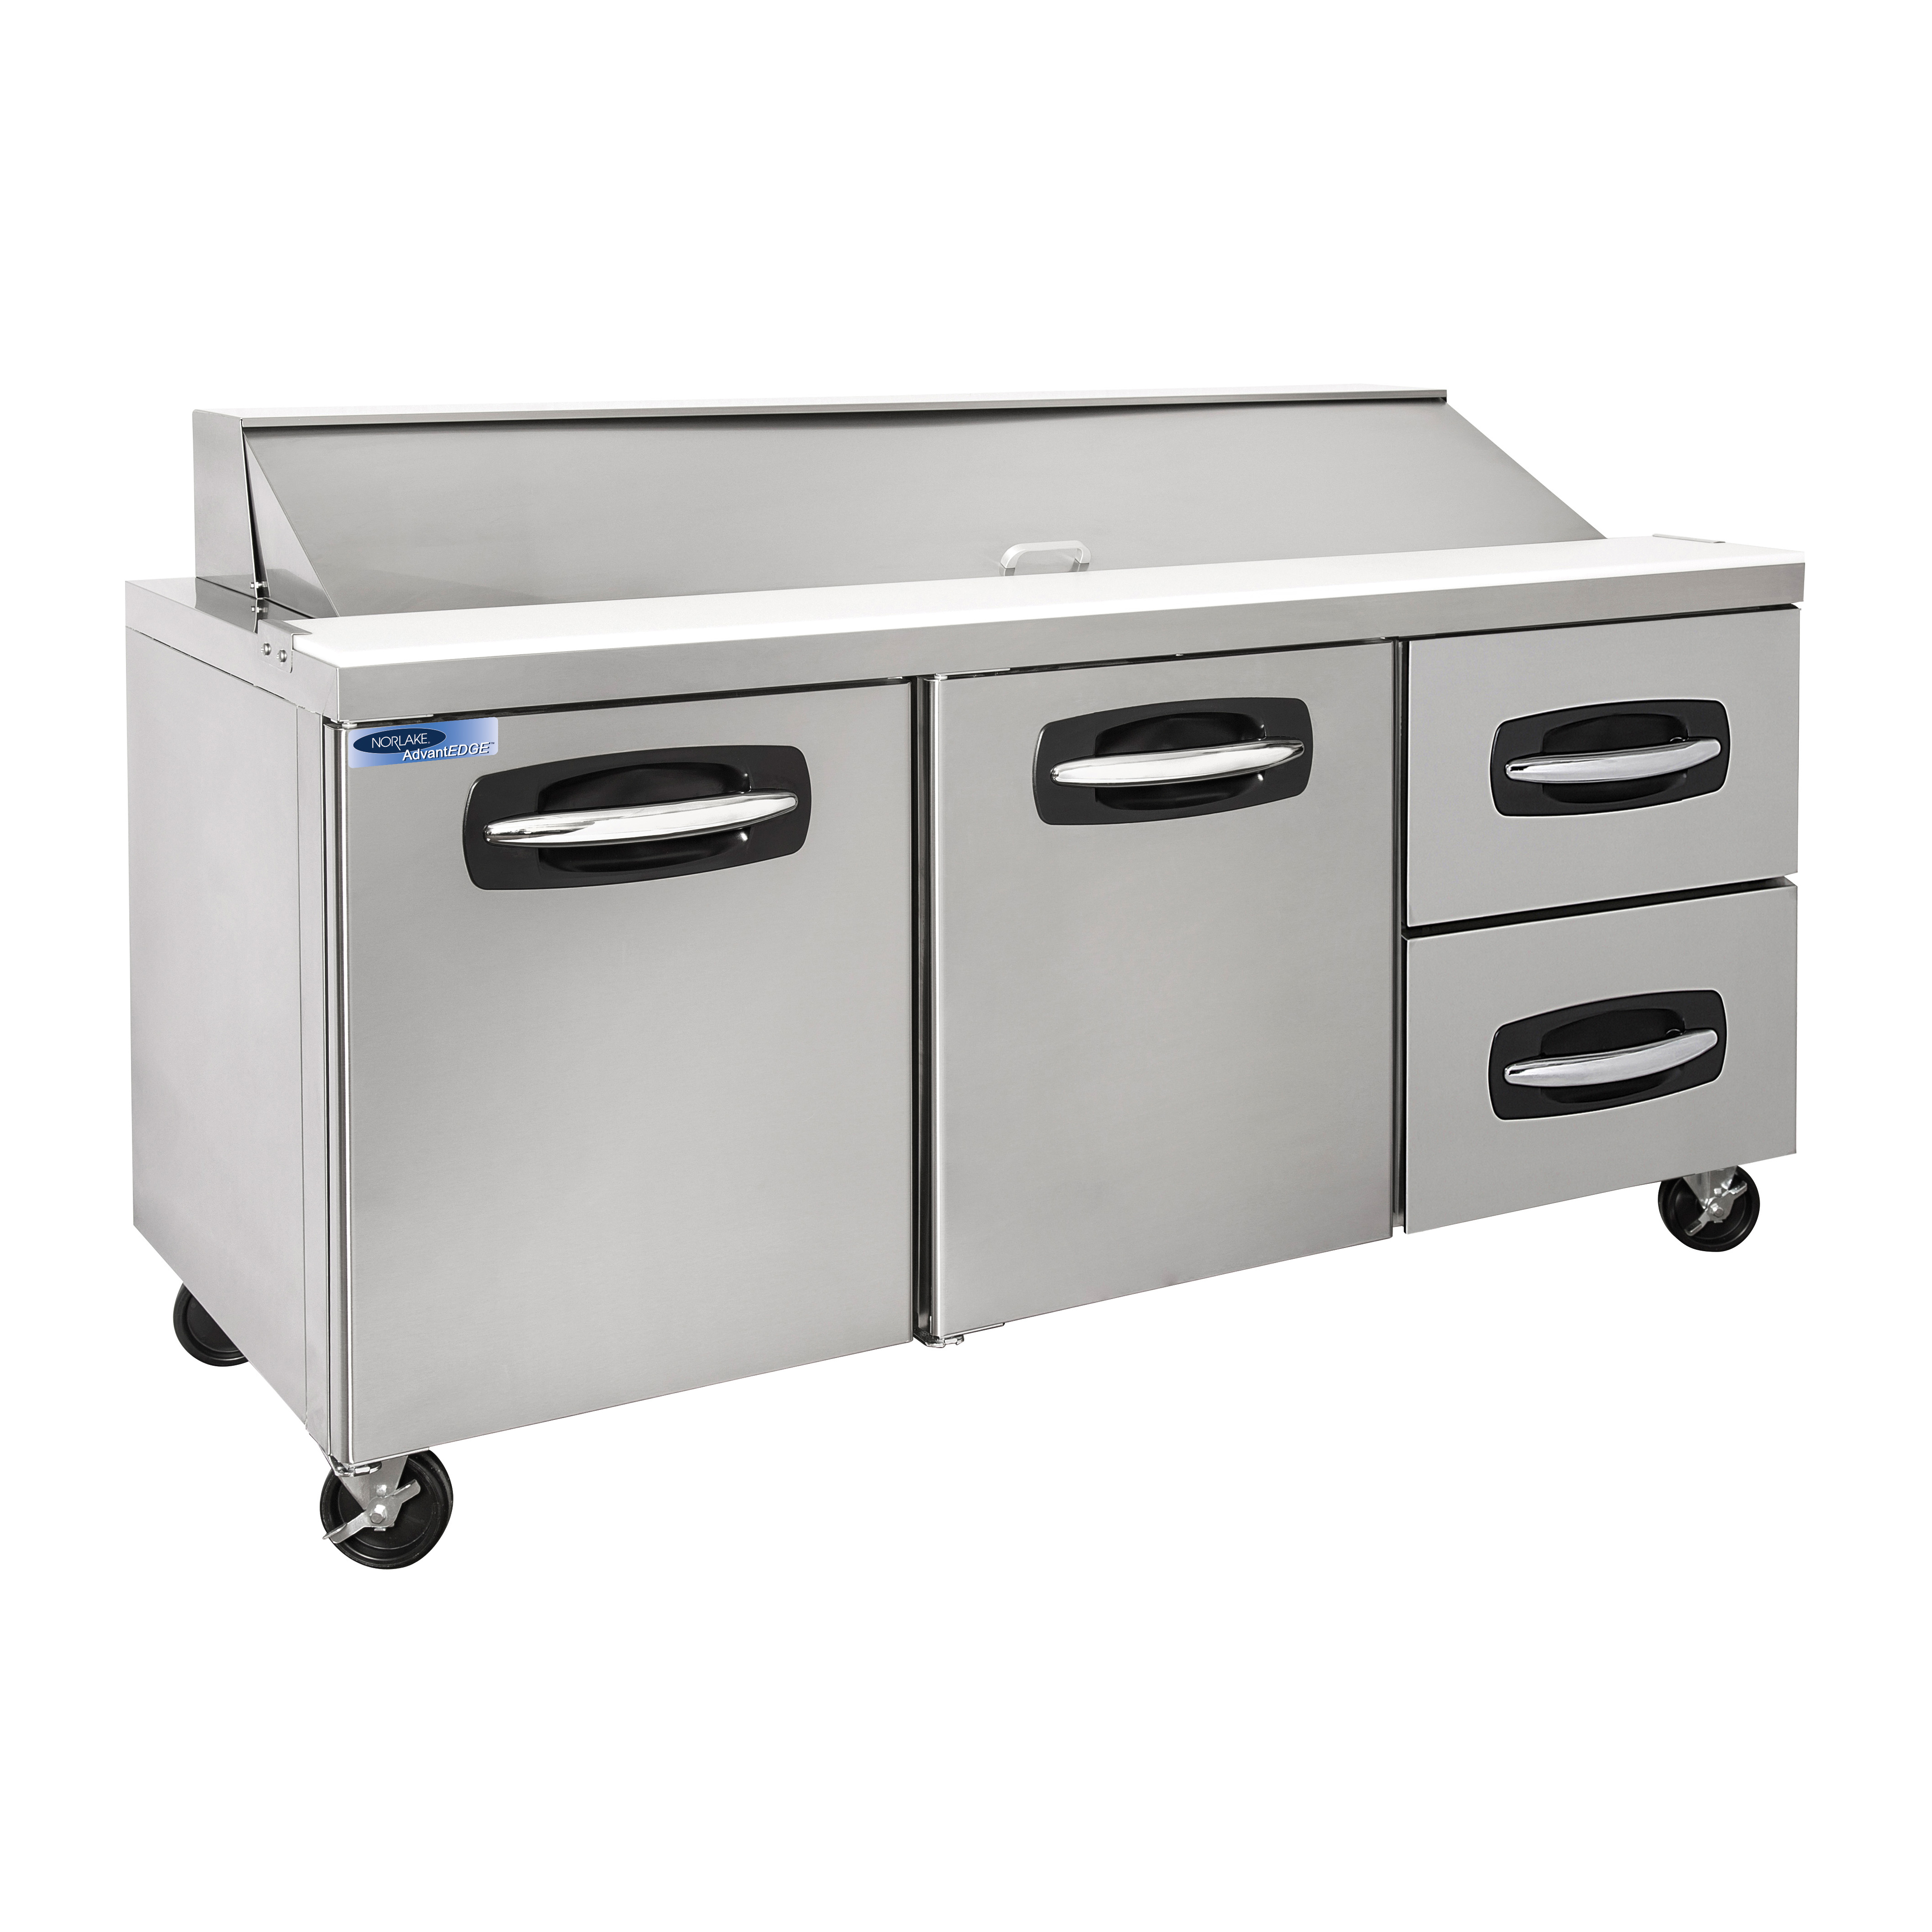 Nor-Lake NLSP72-18A-002B refrigerated counter, sandwich / salad unit